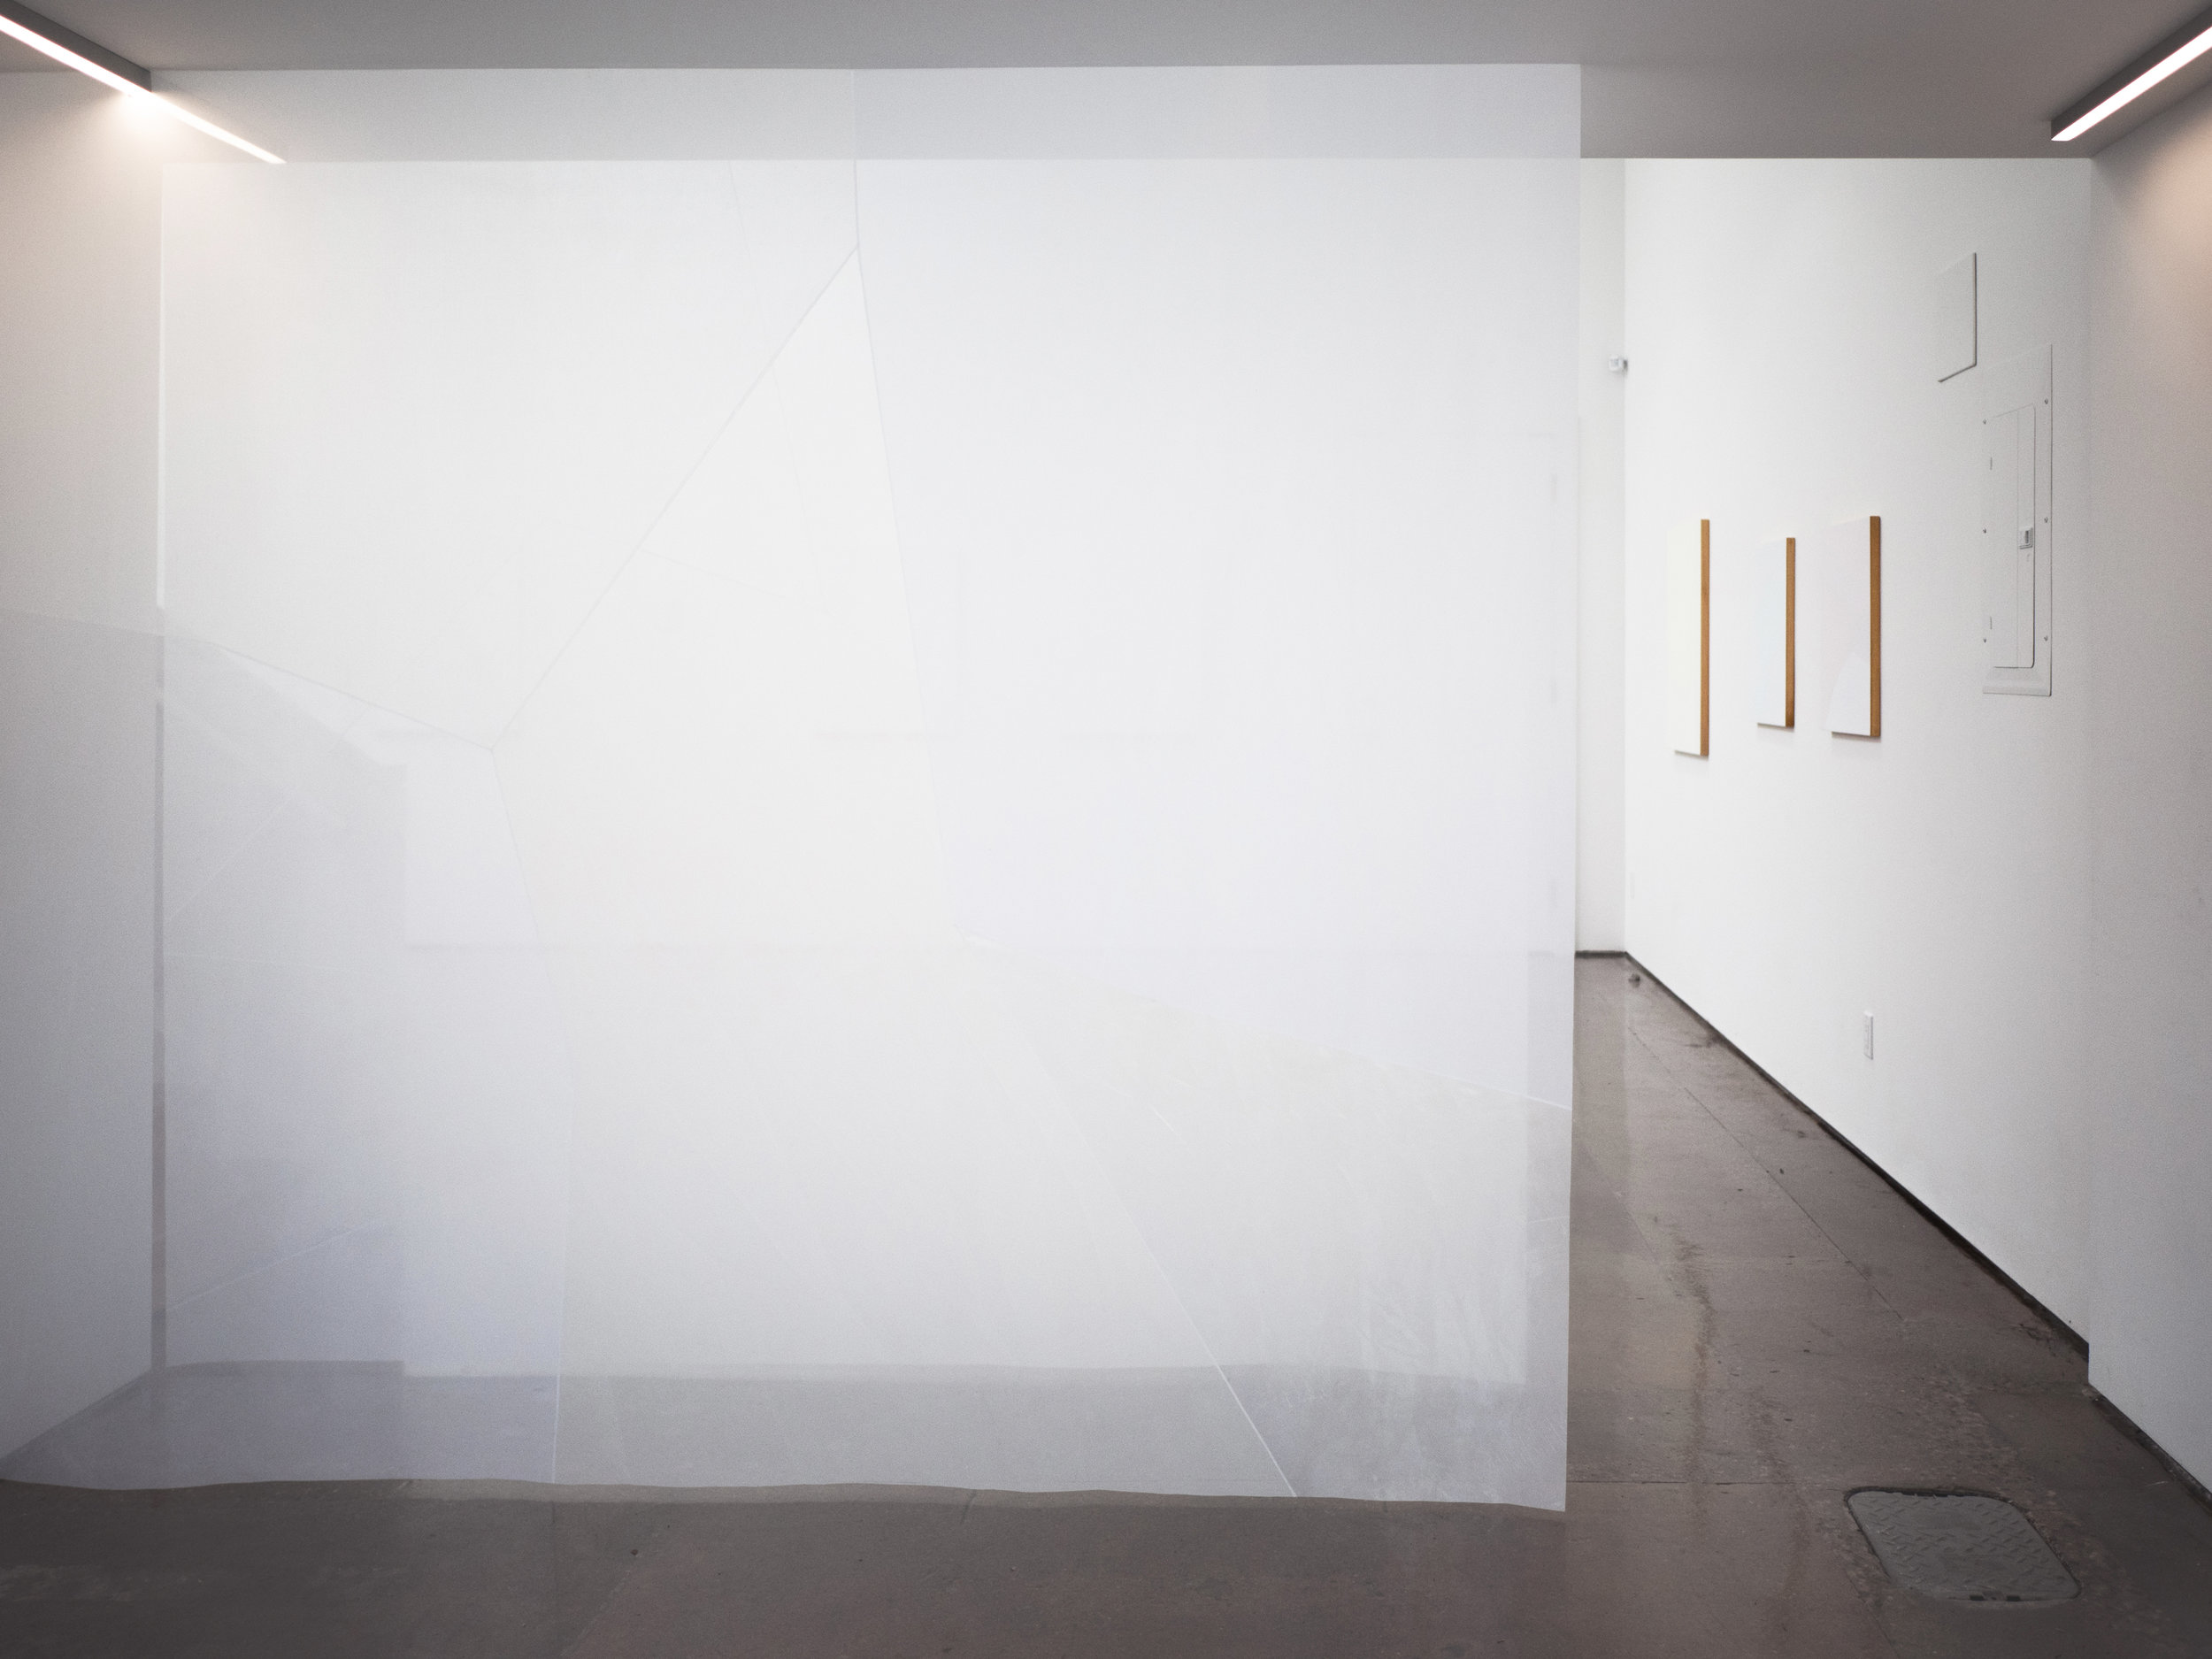 acclimatizing cadence , 2018, thrifted sheers and acrylic medium, 2 panels @ 98 x 87 inches each, photo by Polina Teif